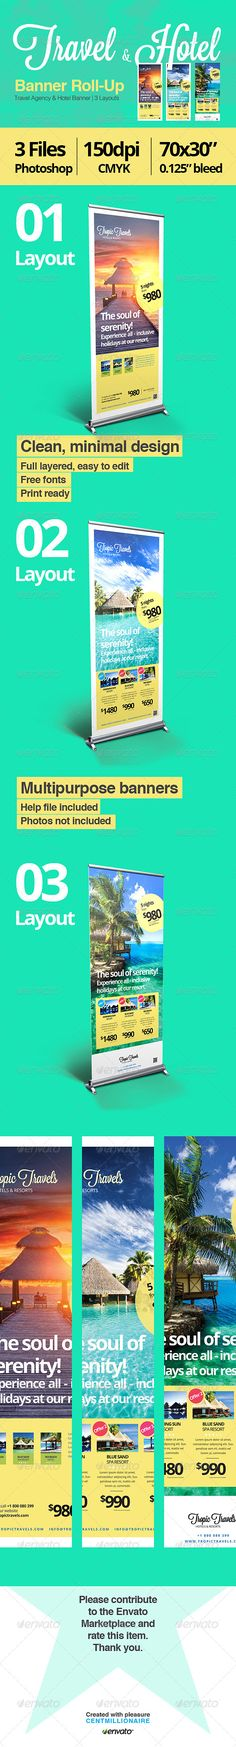 Travel & Hotel Banner RollUp — Photoshop PSD #spa #design • Available here → https://graphicriver.net/item/travel-hotel-banner-rollup/7142956?ref=pxcr